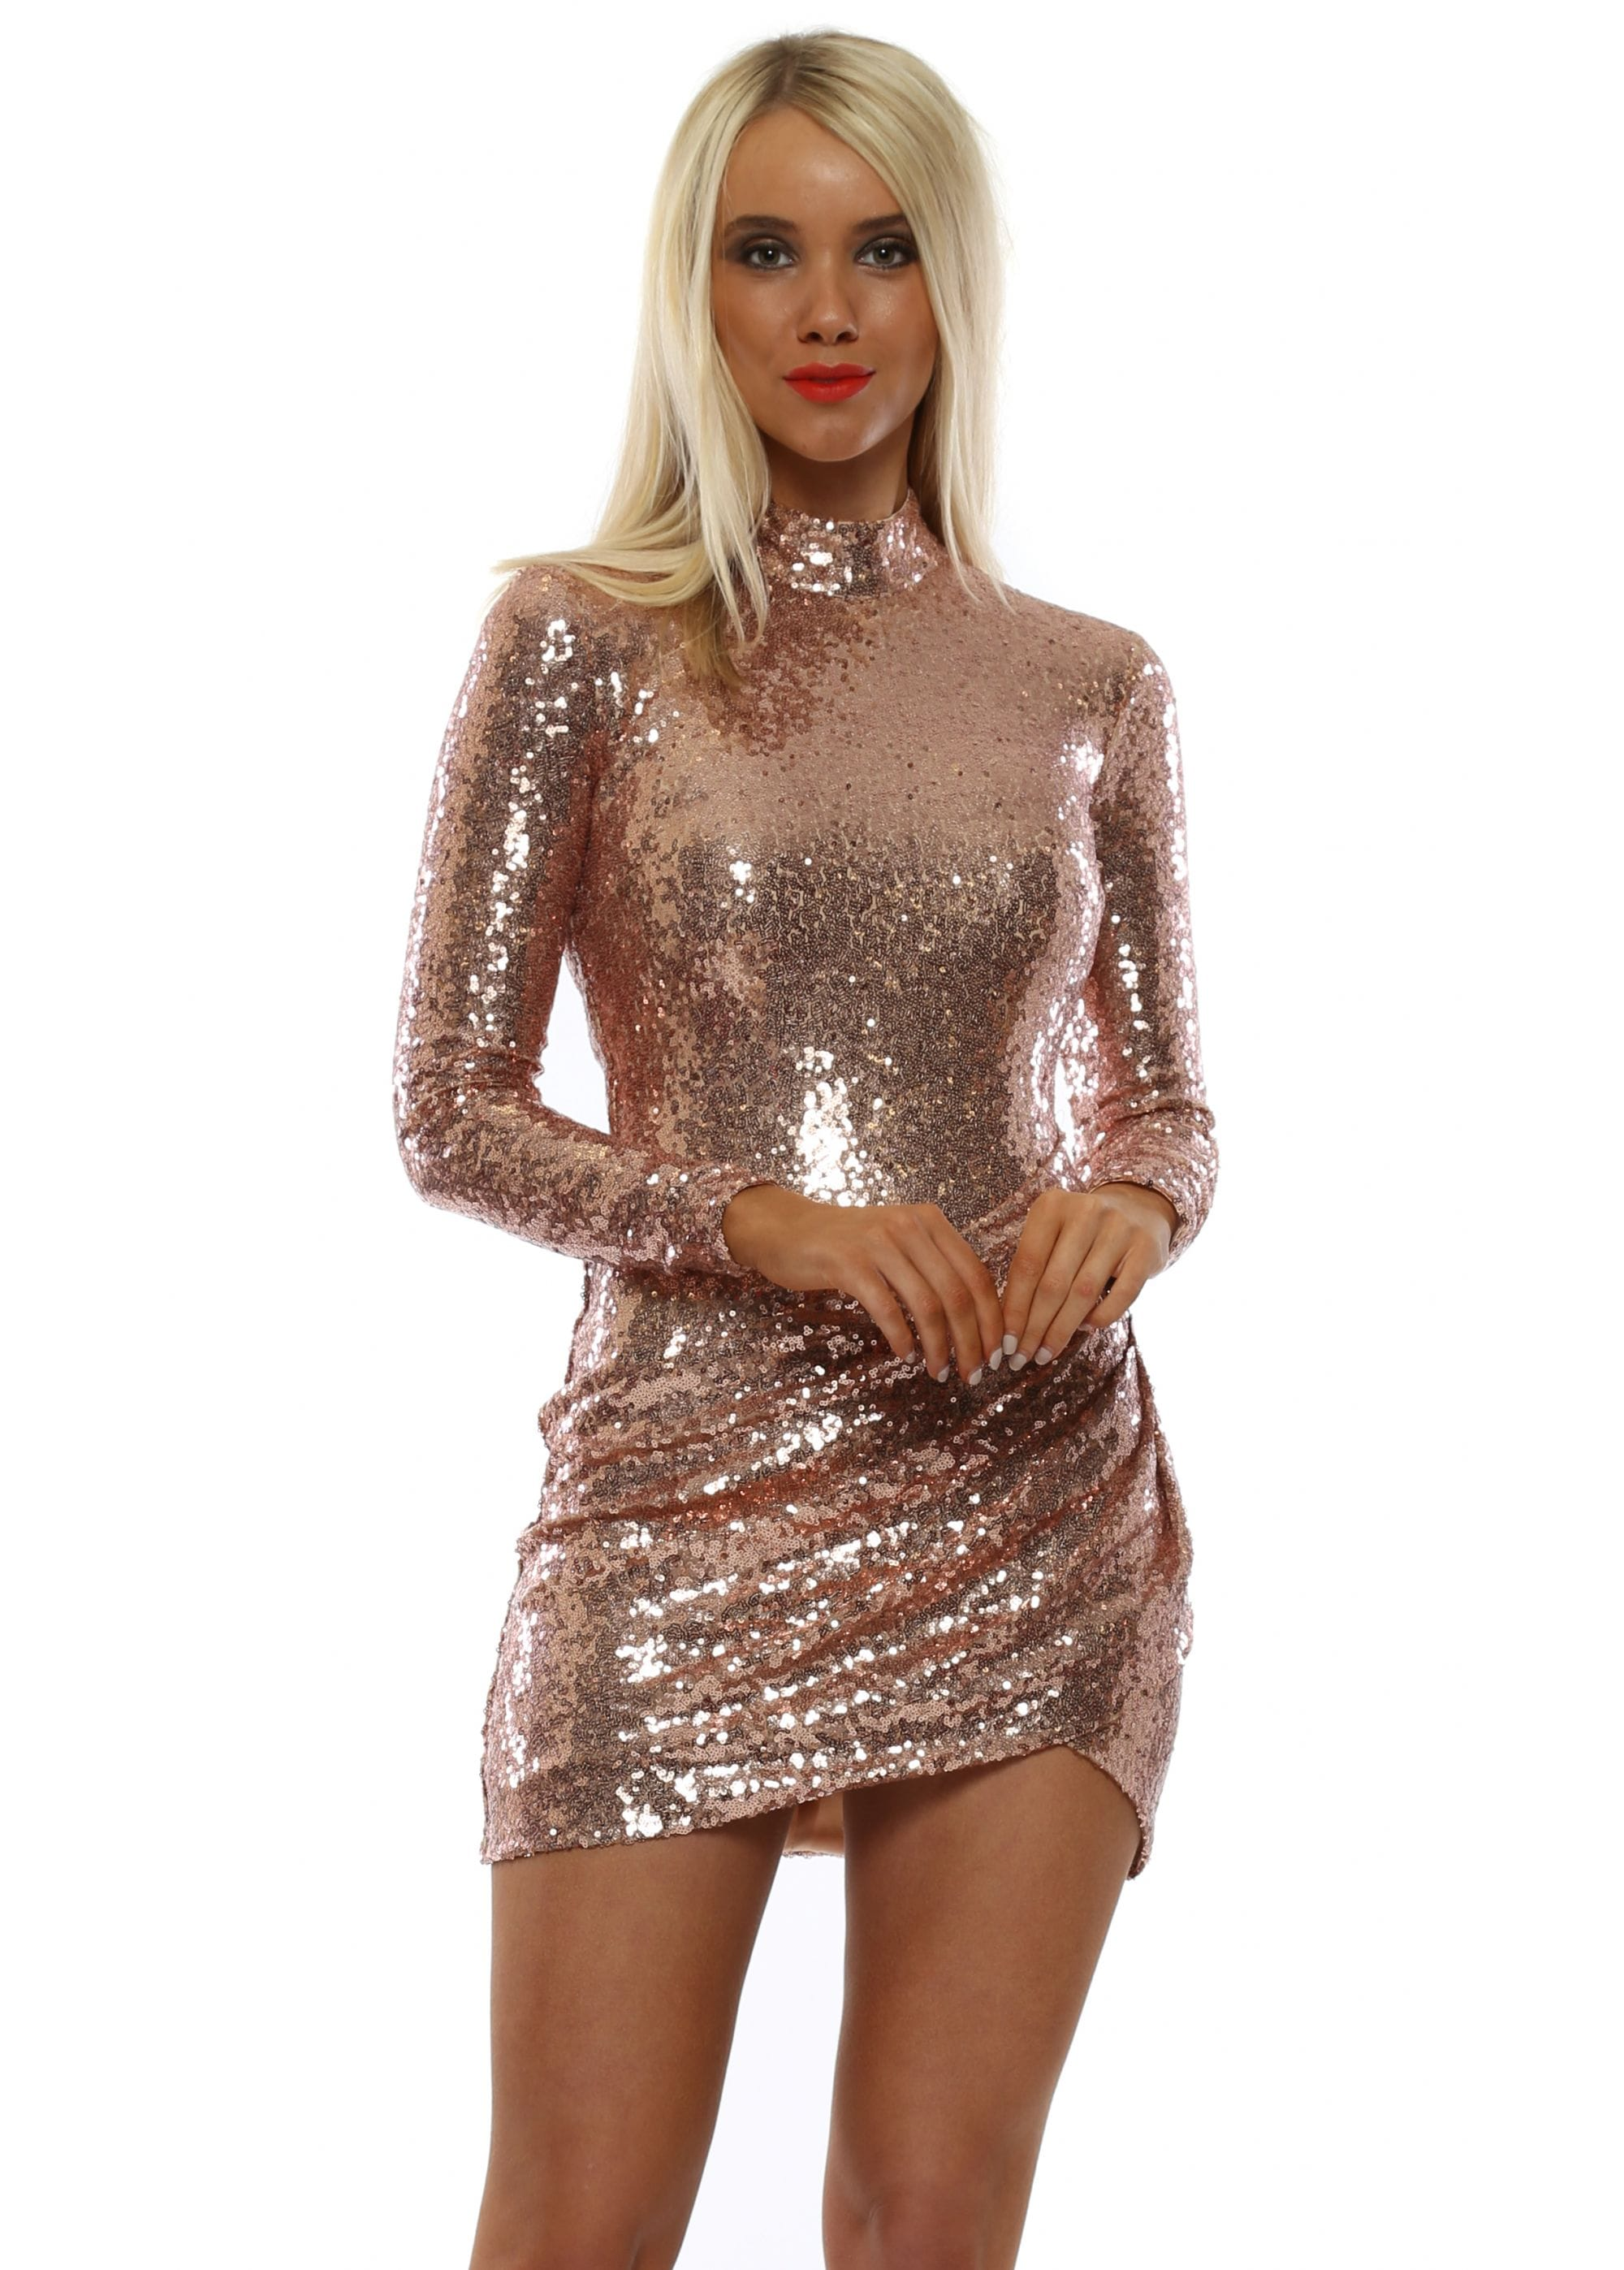 ab5d7bf7 Stephanie Pratt Rose Gold Open Back Mini Sequin Dress